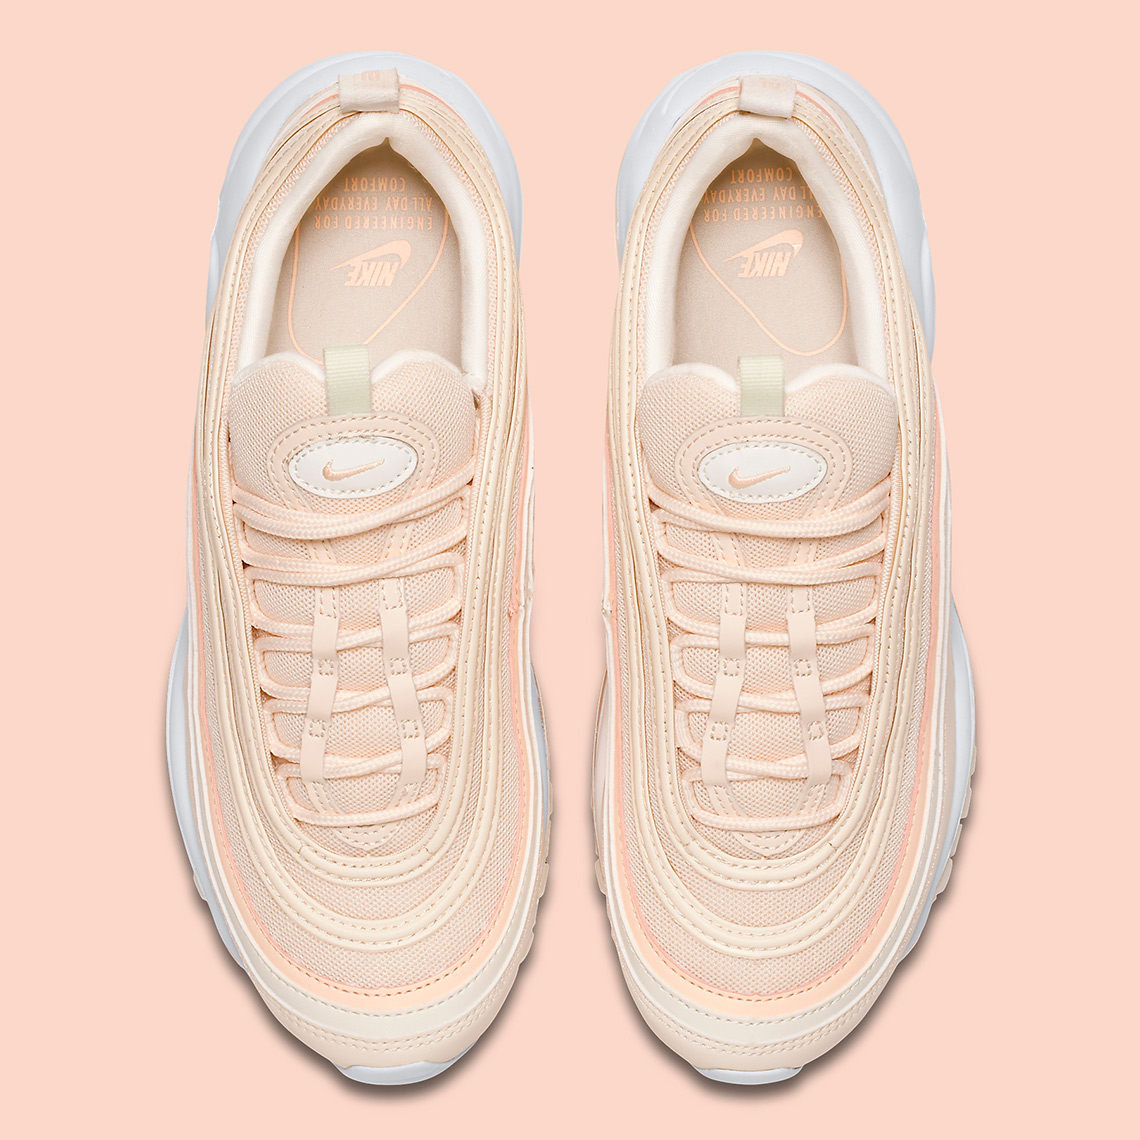 a8a0c157e3 Nike Air Max 97. AVAILABLE AT BSTN $160. Color: Guava Ice/Crimson Tint-Sail-Summit  White Style Code: 921733-801. Advertisement. Advertisement